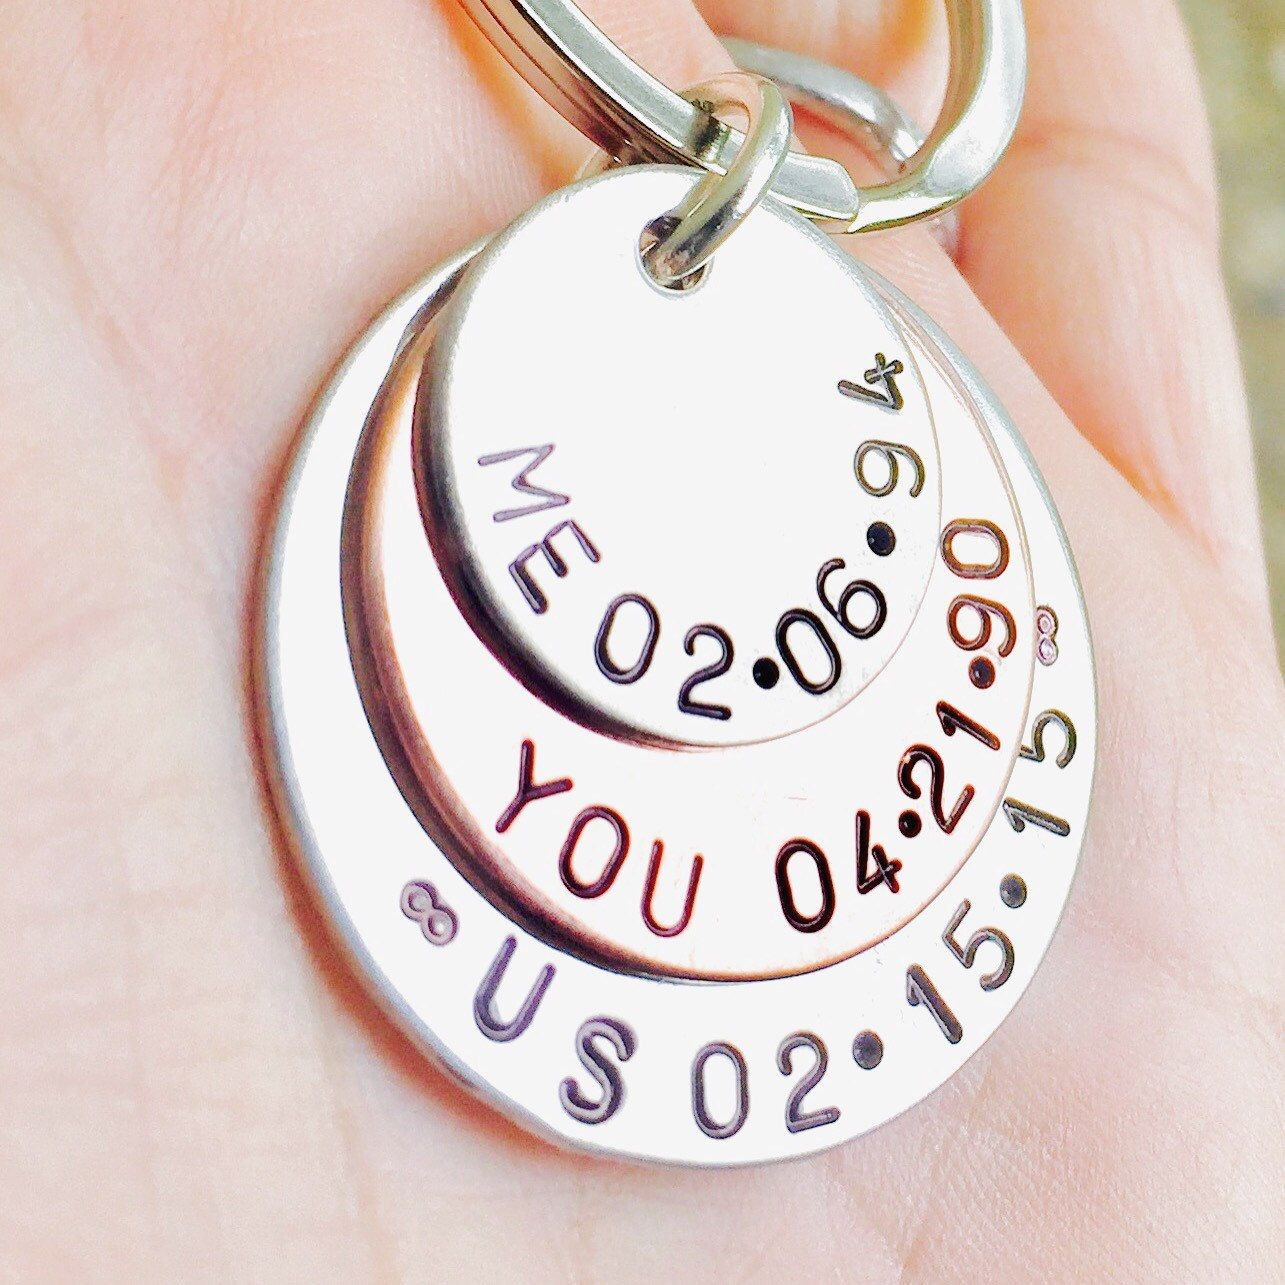 Thoughtful Gifts For Boyfriend Christmas: Me You Us Personalized Keychain,Valentines For Him, Gifts